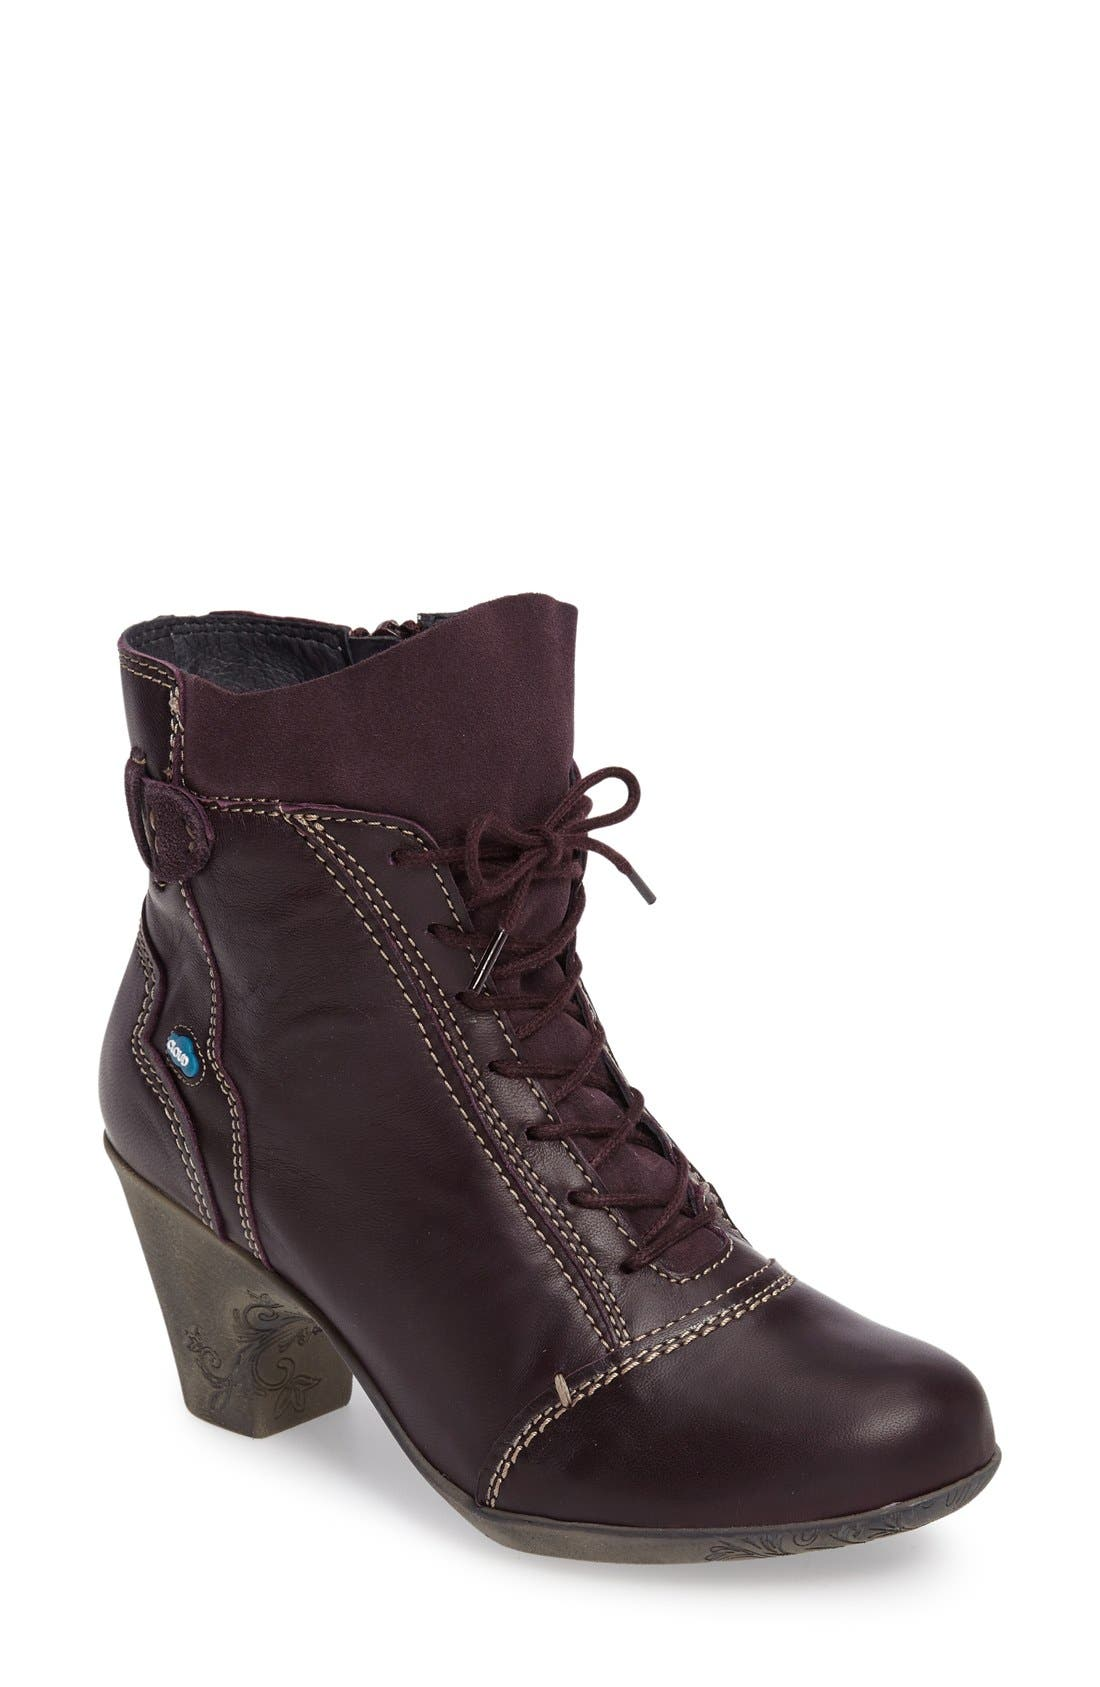 'Jesse' Lace-Up Bootie,                         Main,                         color, Aubergine Leather